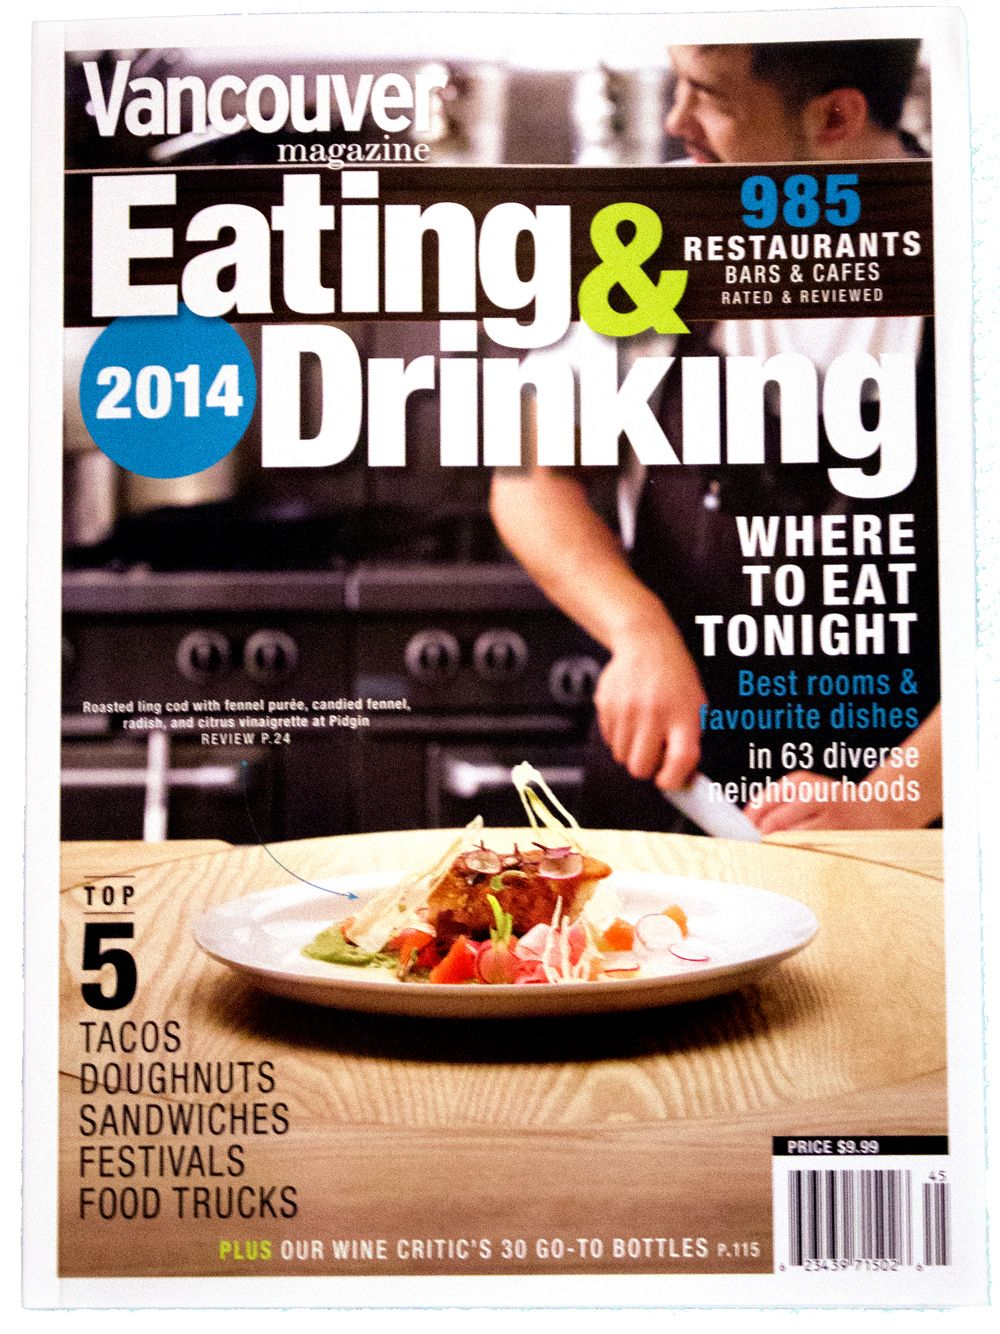 "We are mentioned in the Vancouver Magazine. In its Eating & Drinking edition for 2014. Described as ""Where to eat tonight, Best rooms & favorite dishes n 63 diverse neighborhoods""  We are in the Cambodian and Vietnamese restaurant section  We are solidly in second place with two other Vietnamese restaurants, behind a Vietnamese / Cambodian fusion restaurant."